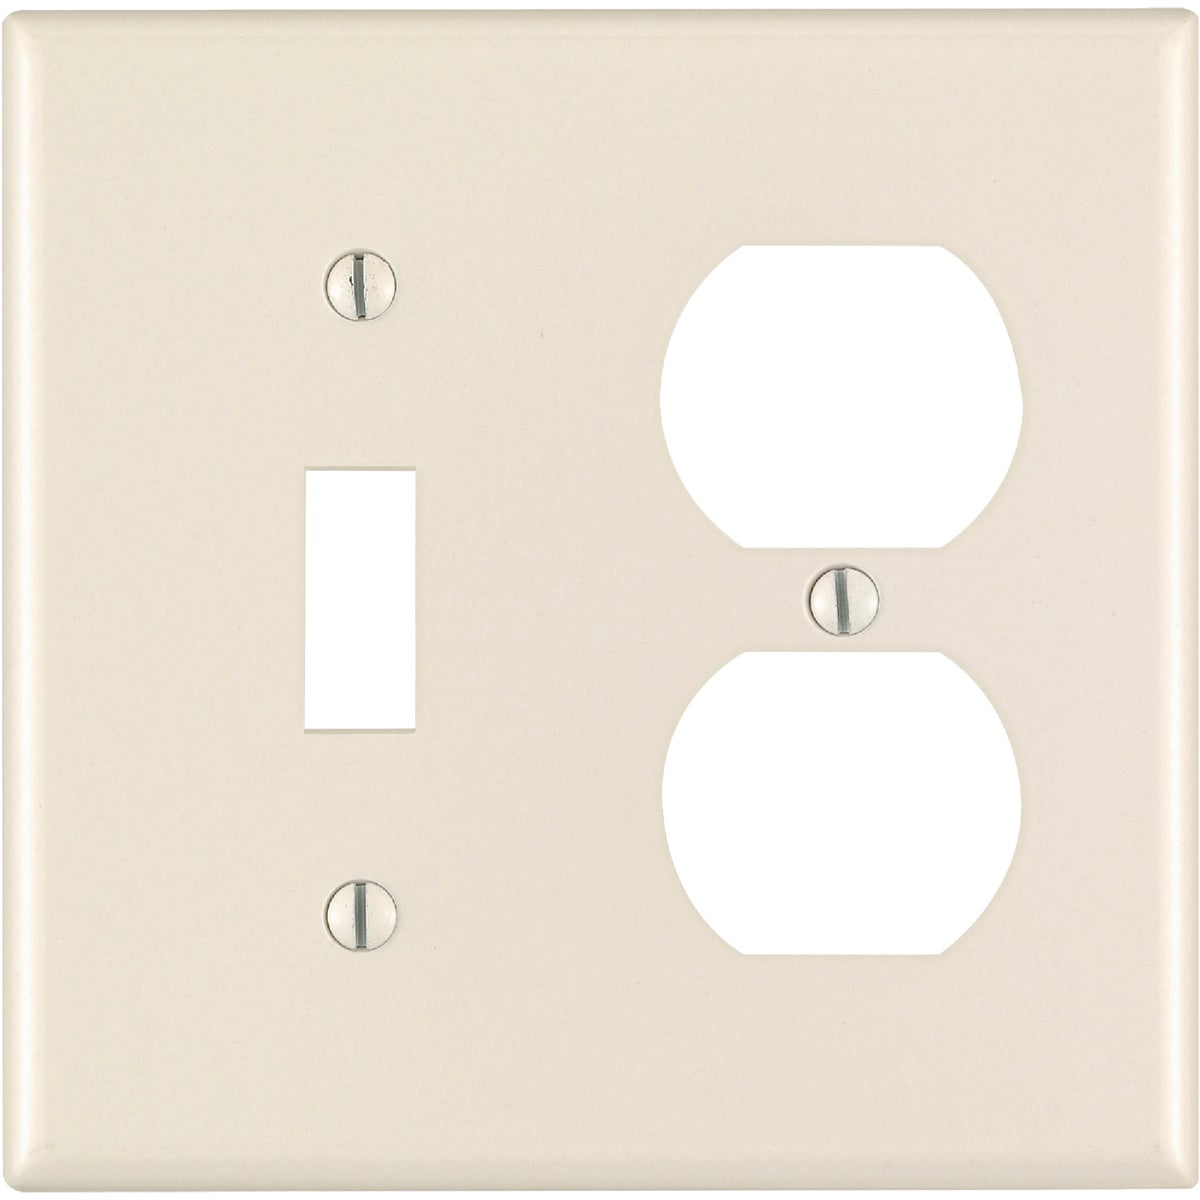 LT ALM COMBO WALLPLATE - 000-78005 by Leviton Mfg Co